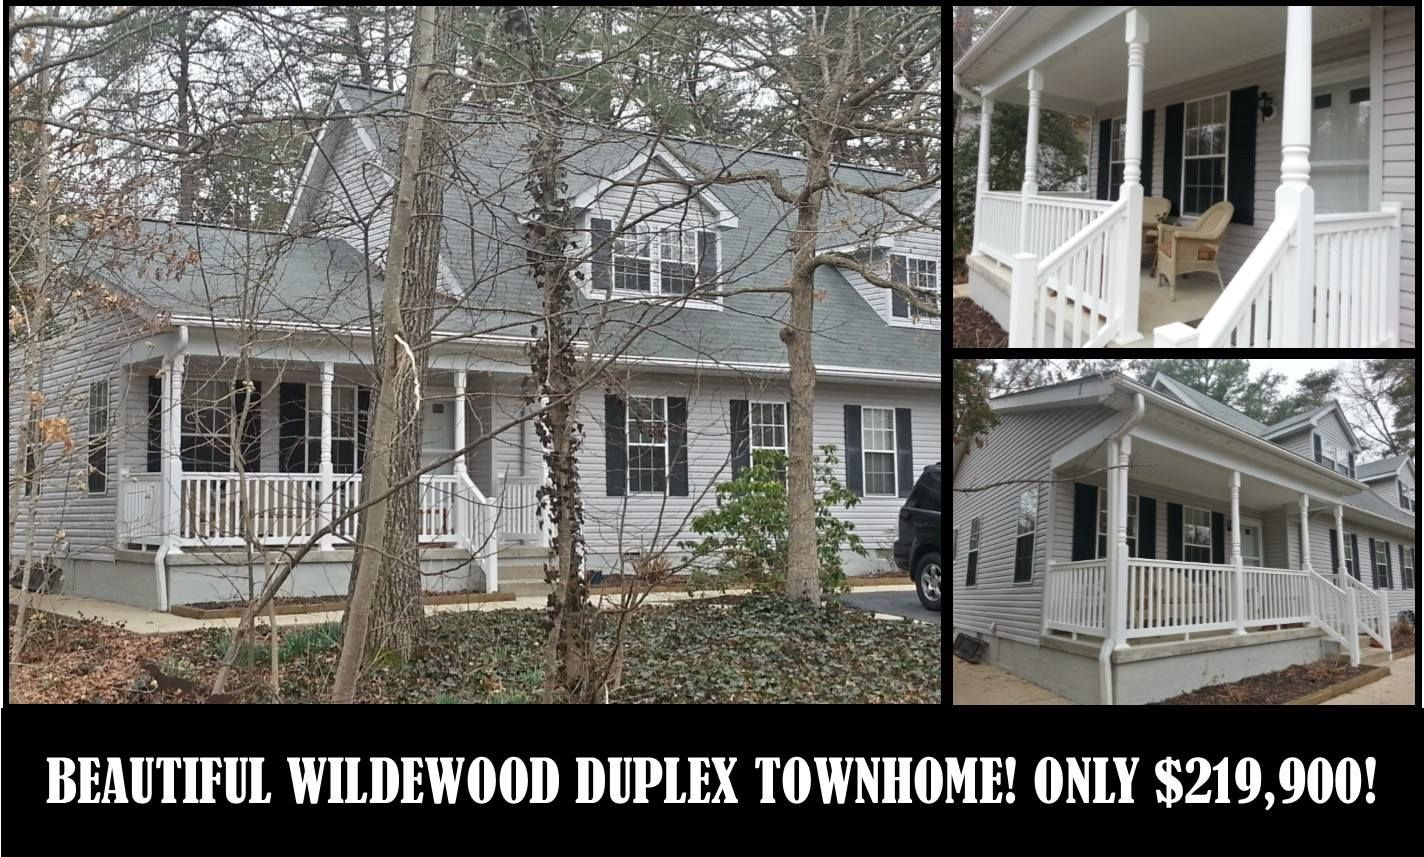 Home For Sale In Wildewood Md Only 219900 Home For Sale In